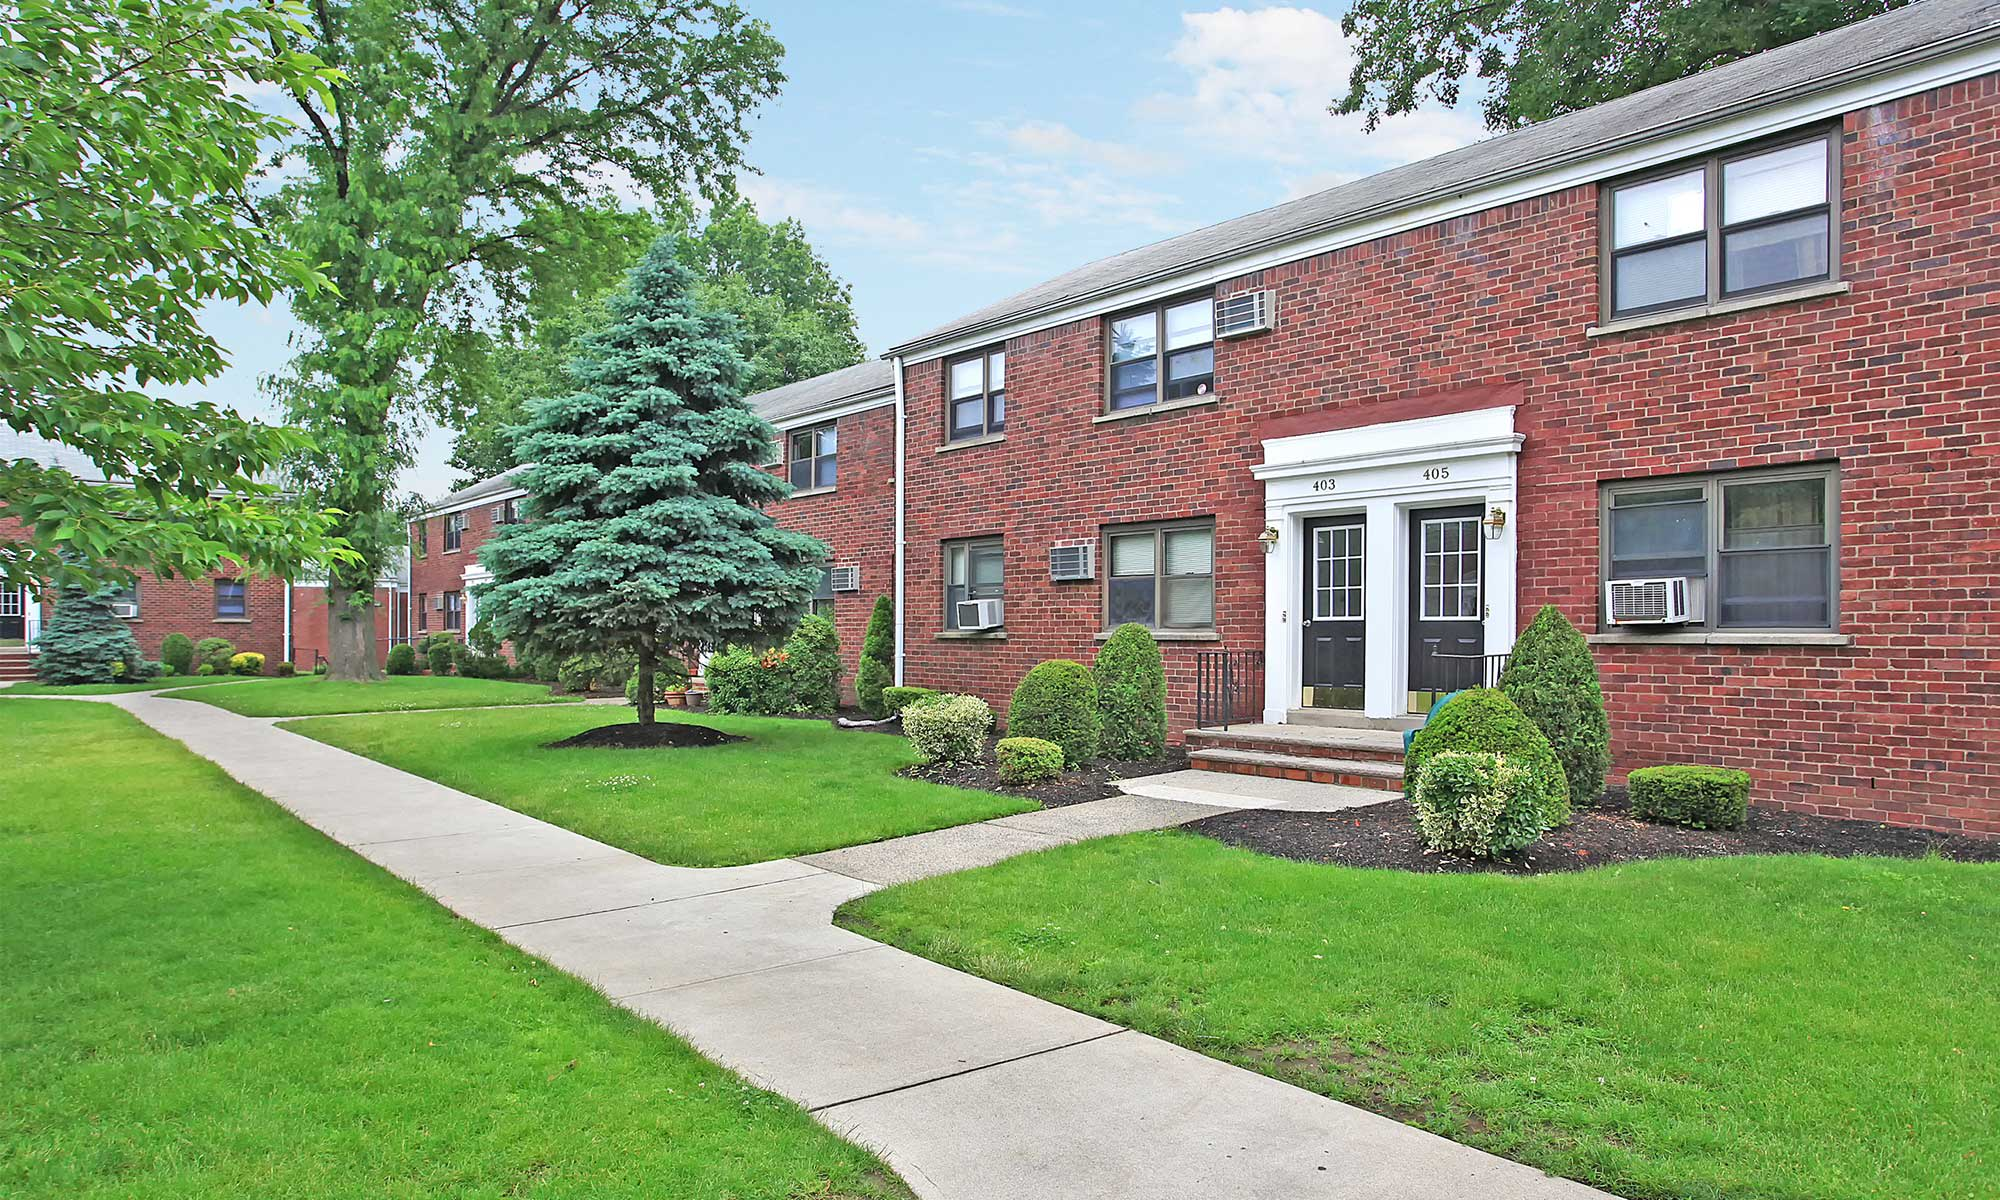 Apartments in Hasbrouck Heights, NJ